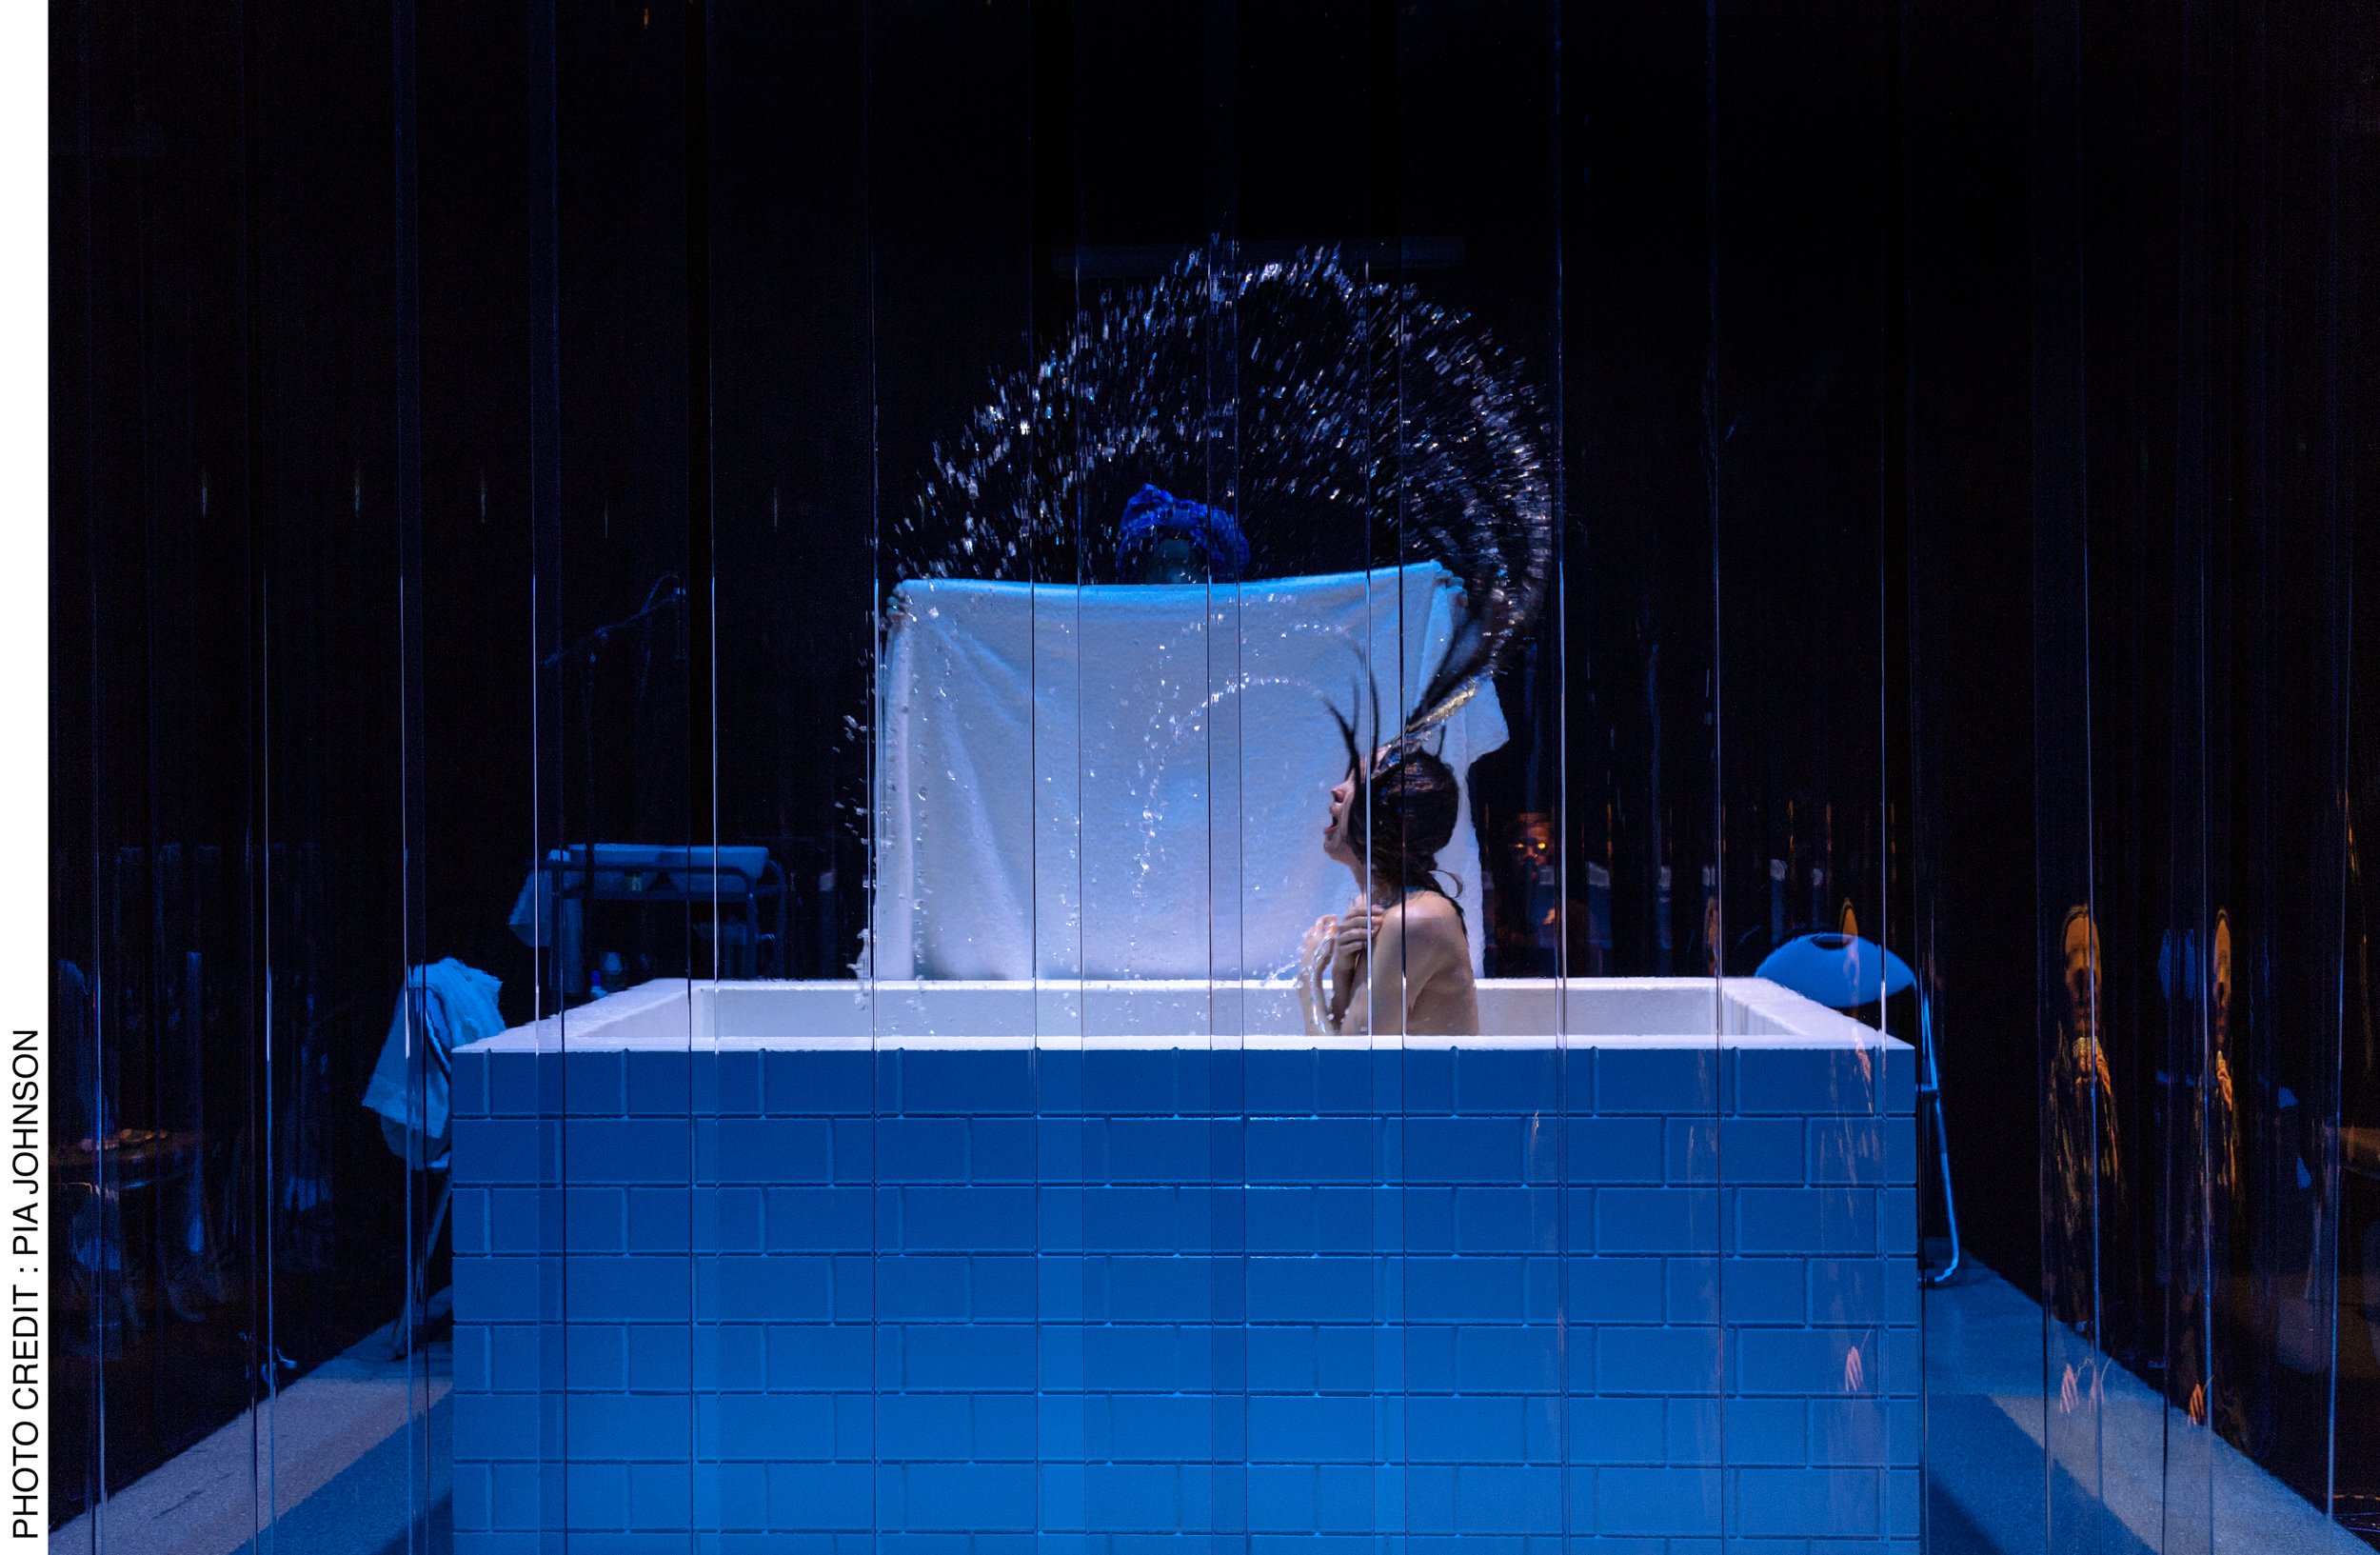 <p>Act 2 of <i>Dybbuks </i>and the mikvah scene. Lauren Langlois throws back her head as water from the ritual bath is flung against the perspex curtain, towards the audience.  Photo Credit: Pia&nbsp;Johnson</p>